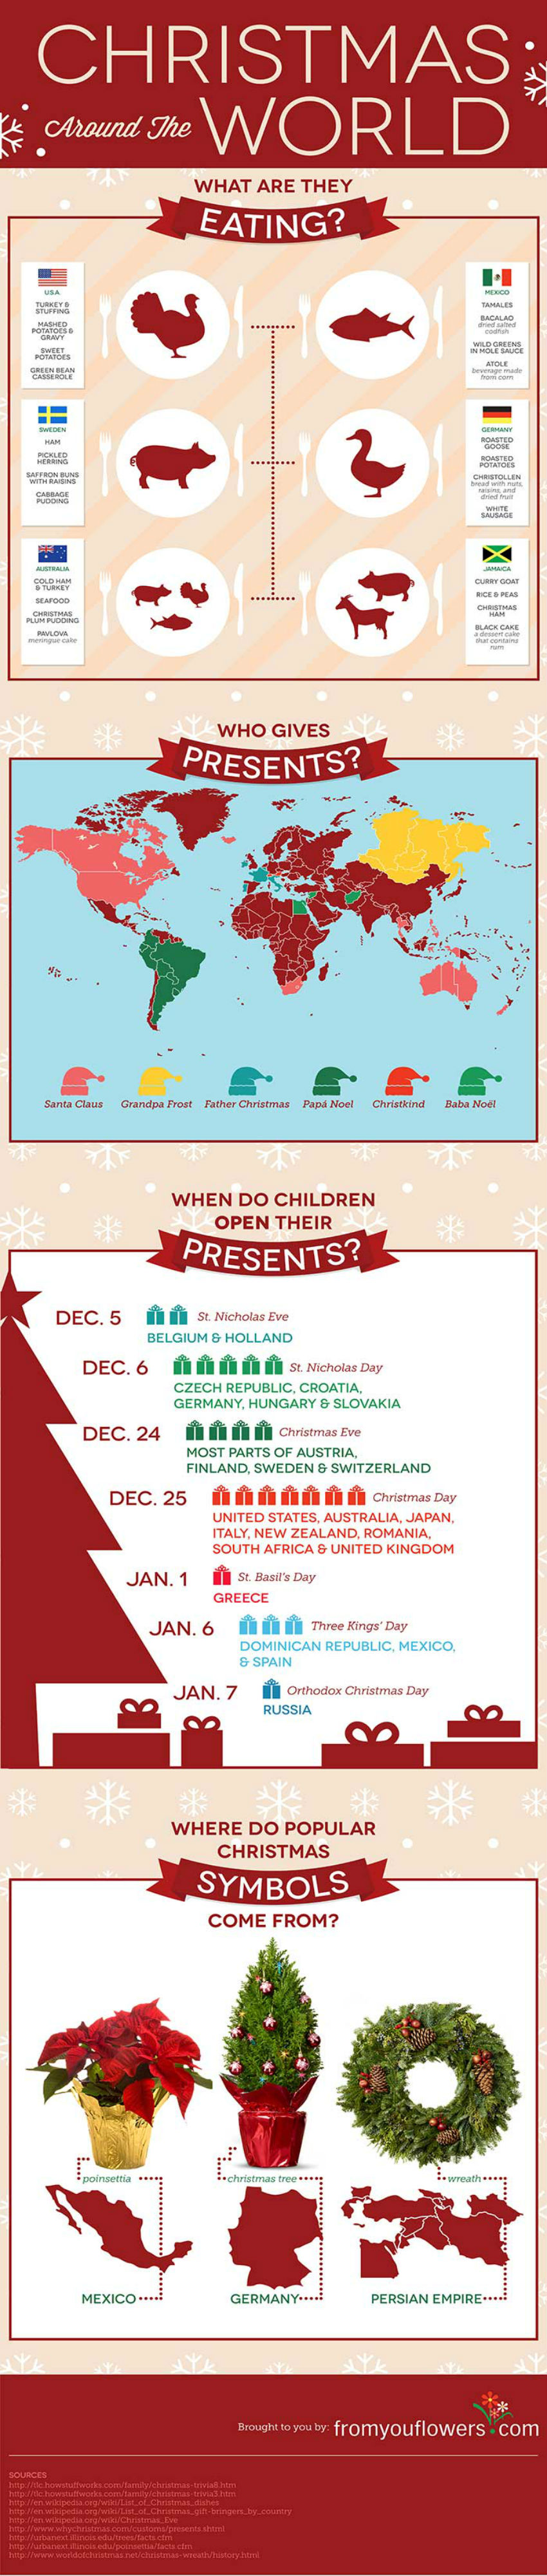 Share Christmas knowledge with this one! Image Source: Easily